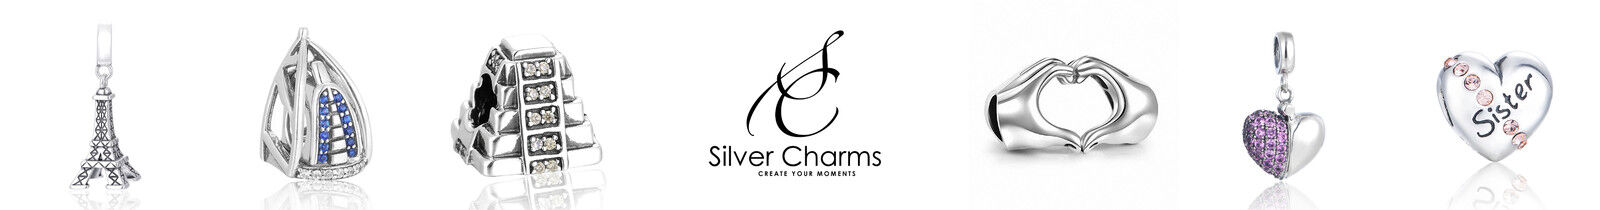 UK_Silver_Charms